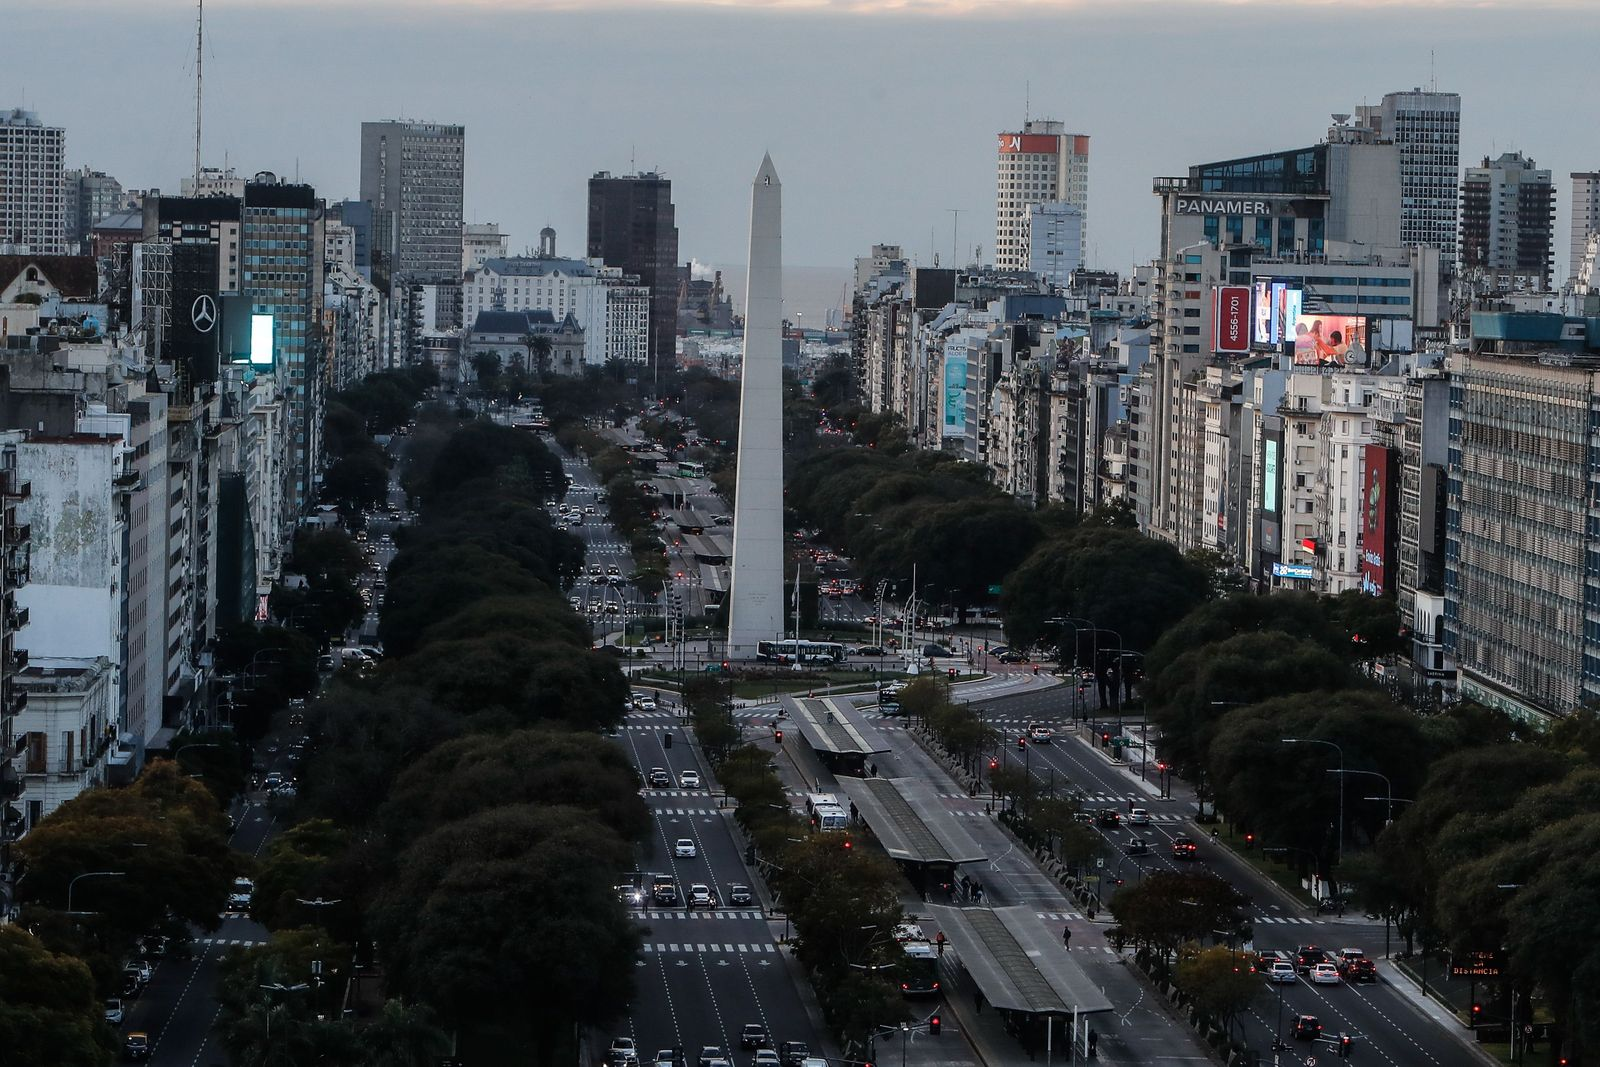 Daily life during quarantine in Buenos Aires, Argentina - 11 Aug 2020